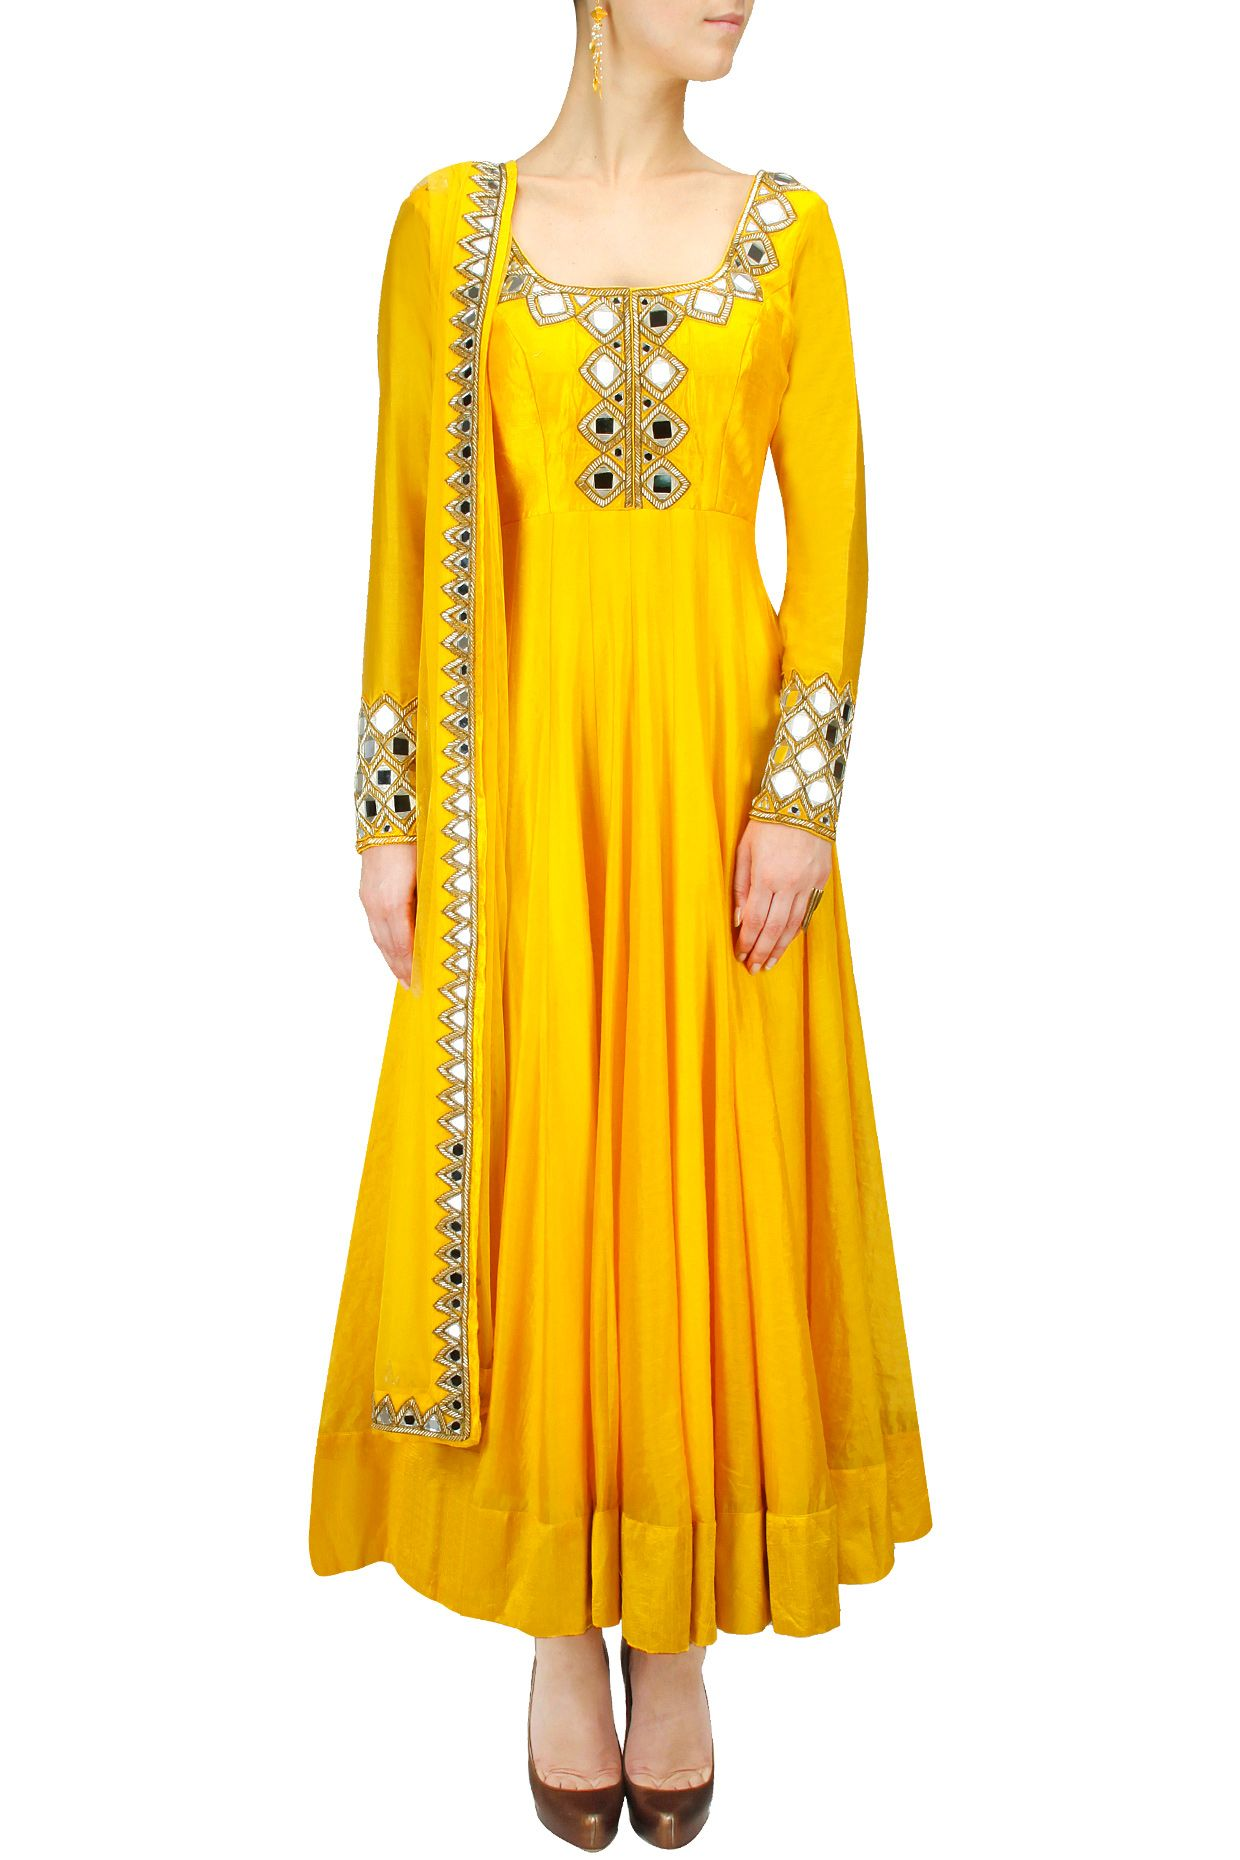 73b8f4de7b Sunny yellow mirror work anarkali set BY ARPITA MEHTA. Only wish it had a  contrasting or textured border instead if the current yellow border at the  base.